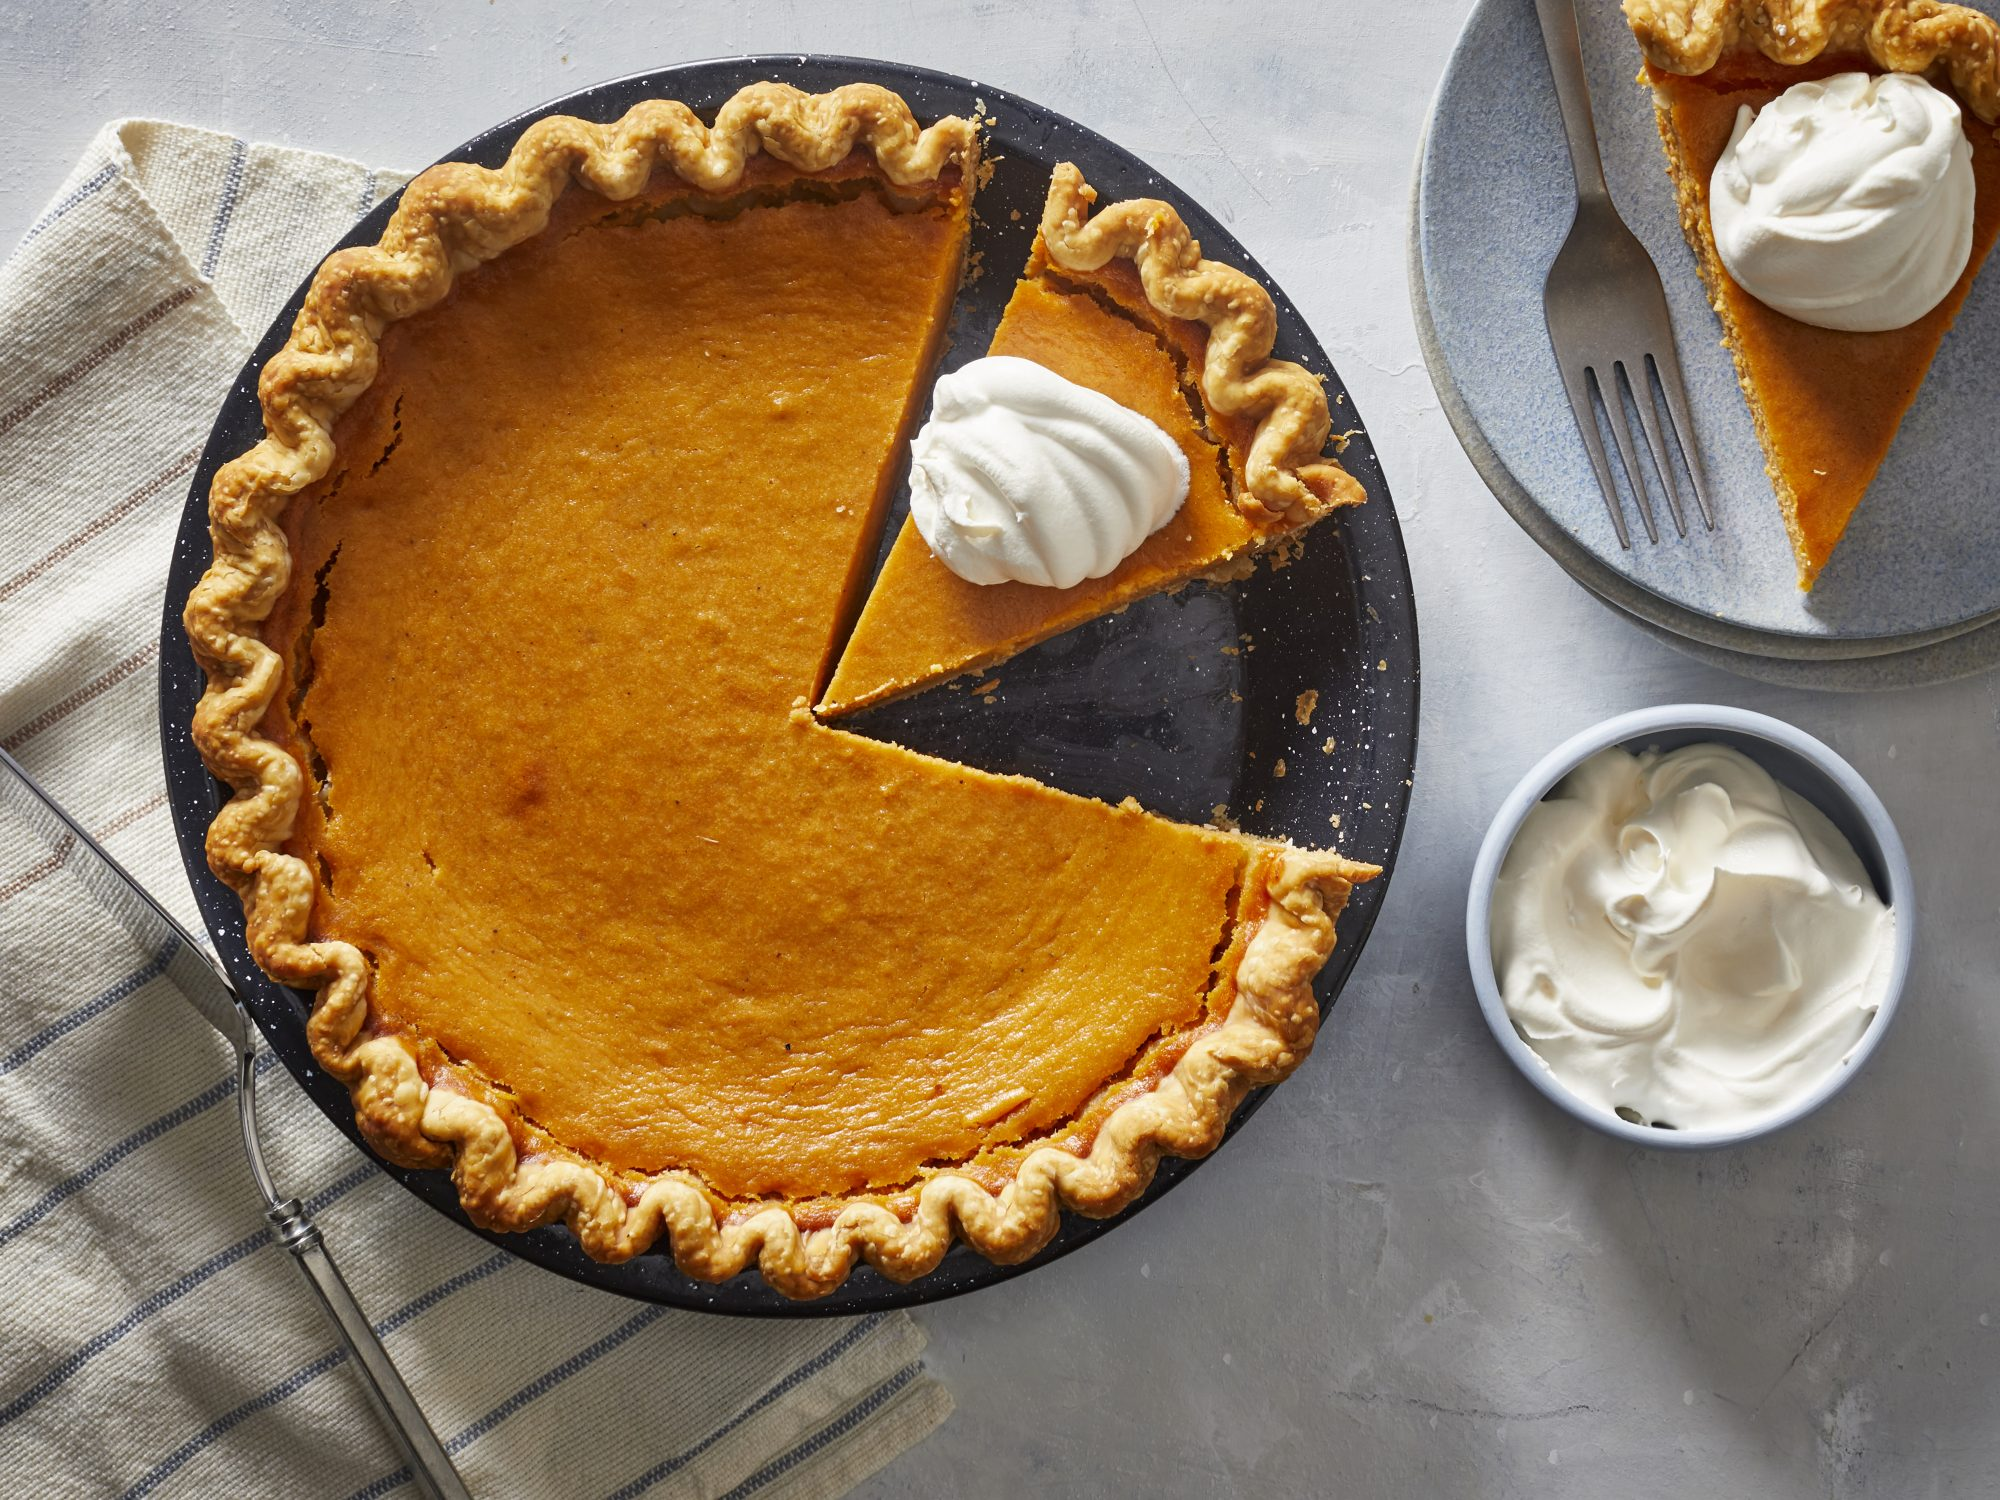 Mississippi Sweet Potato Pie With Bourbon Whipped Cream